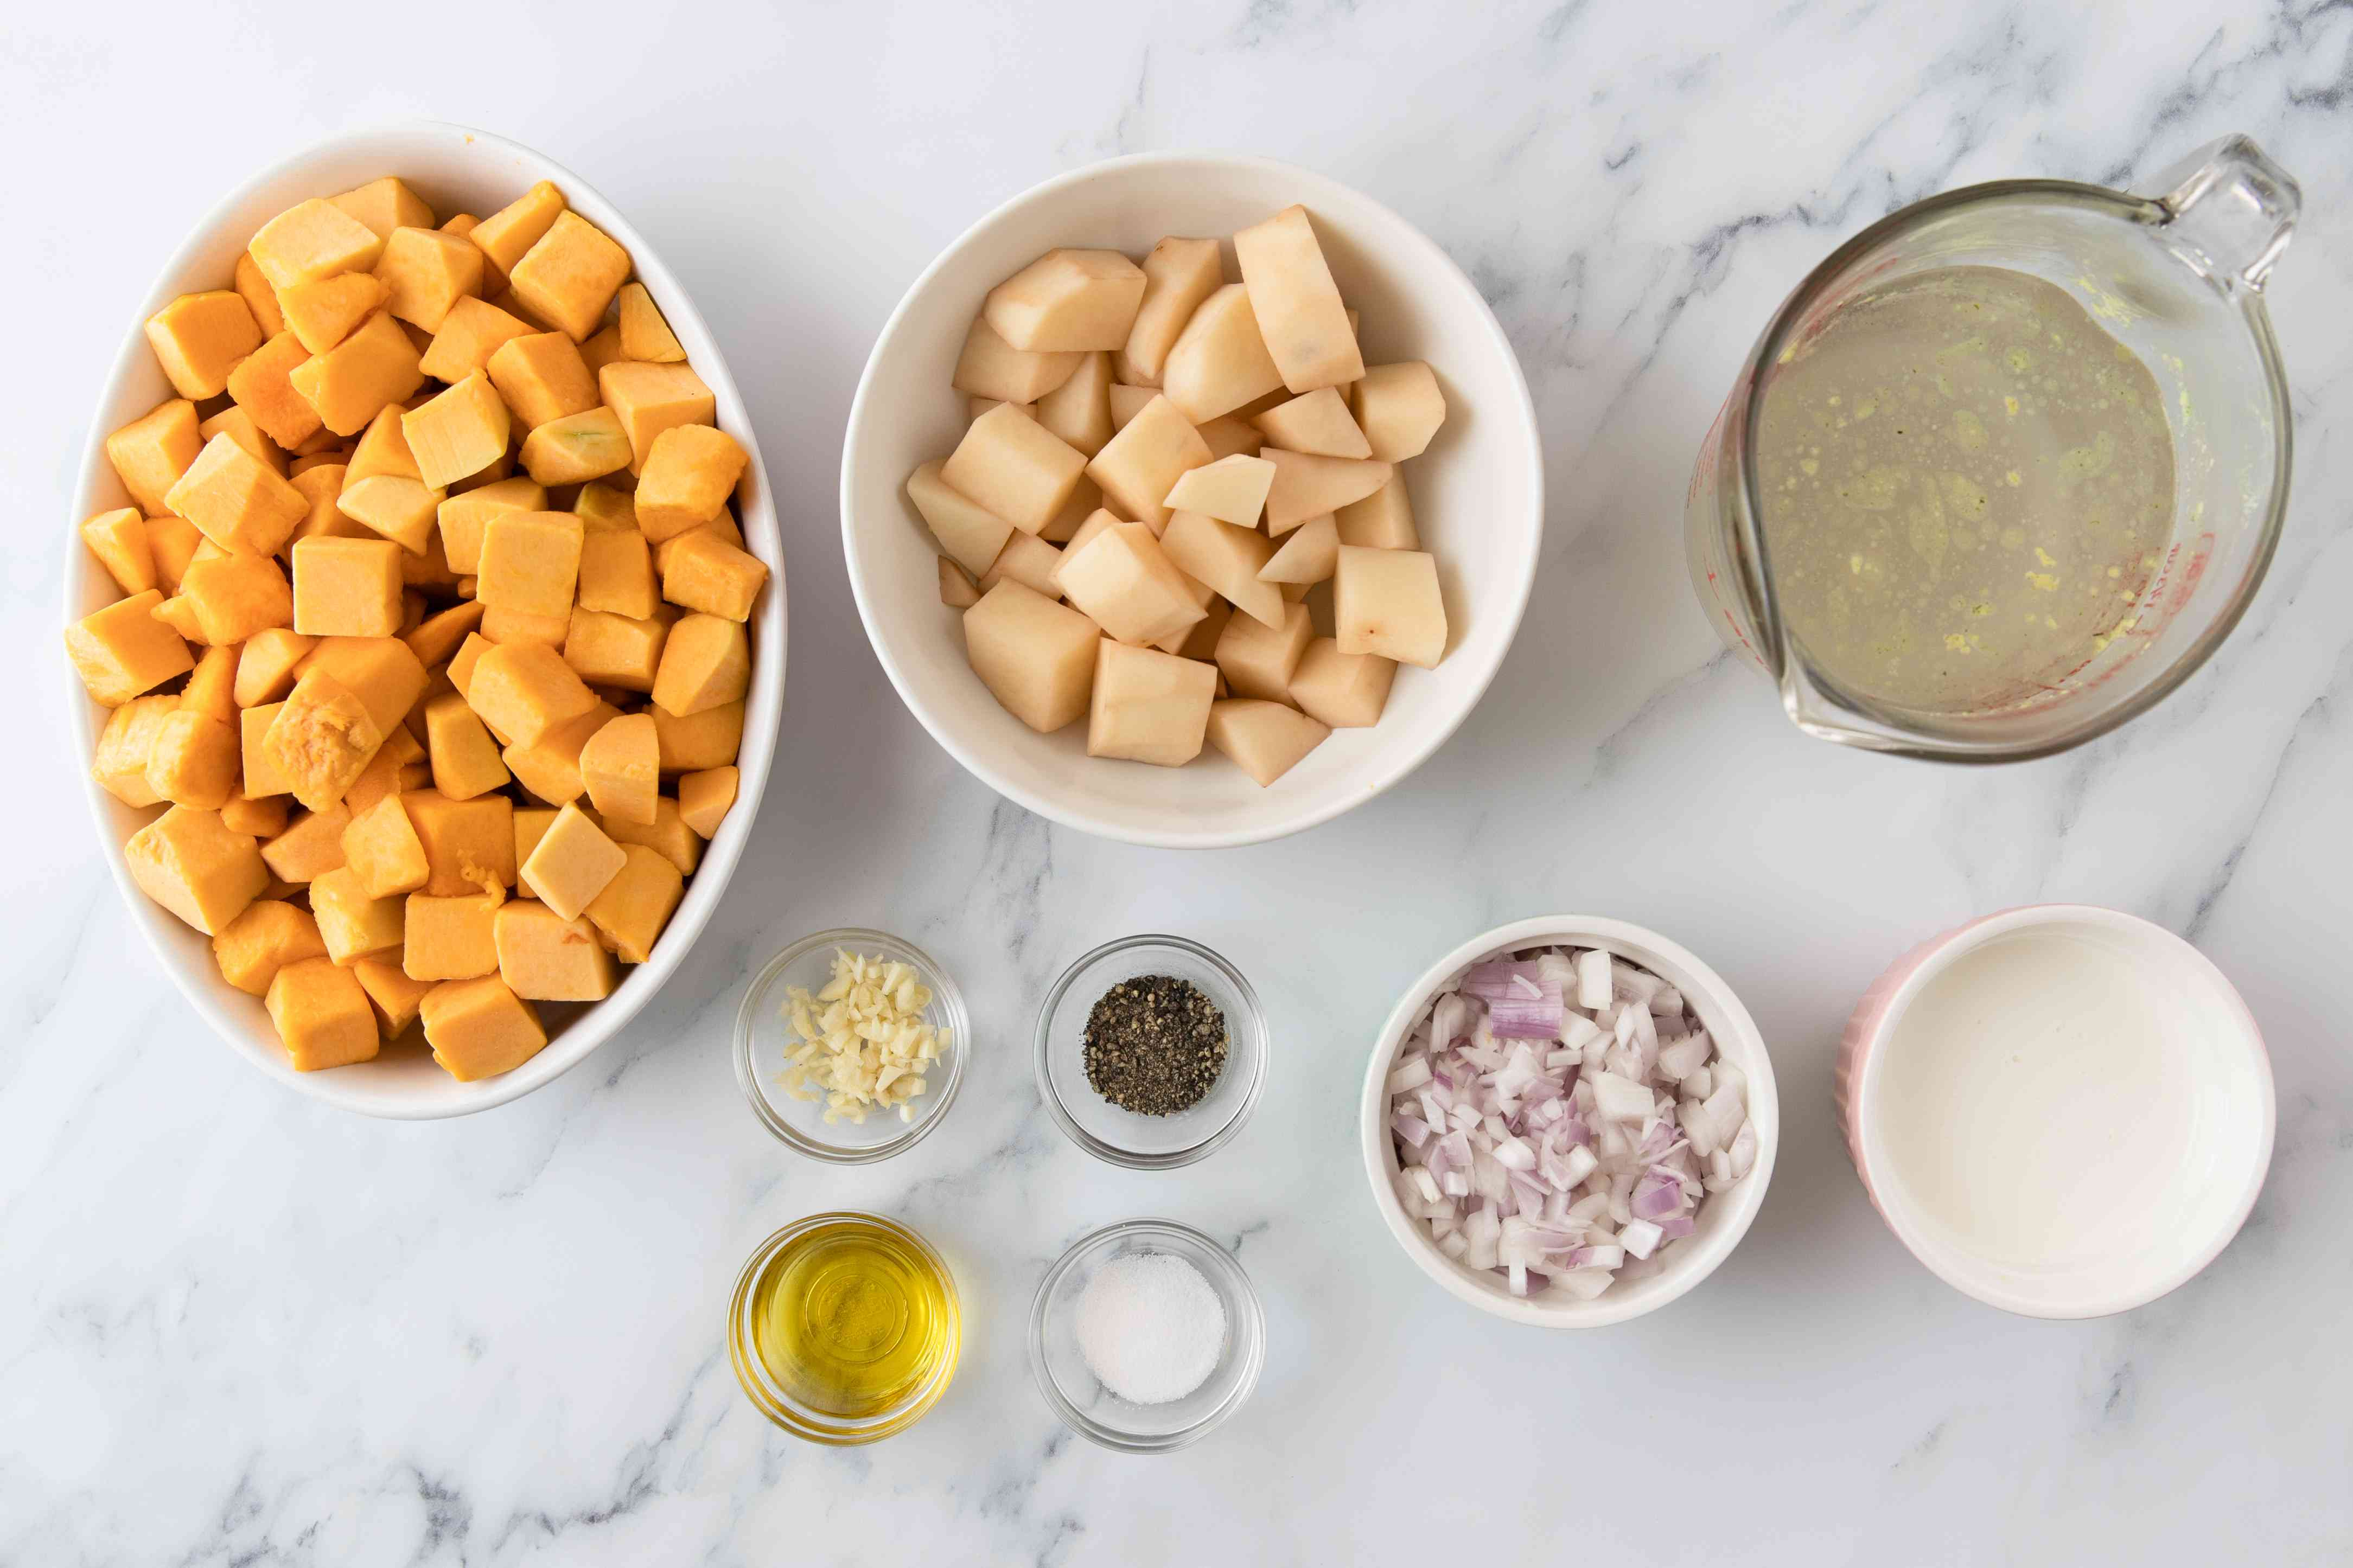 Ingredients for traditional french pumpkin soup